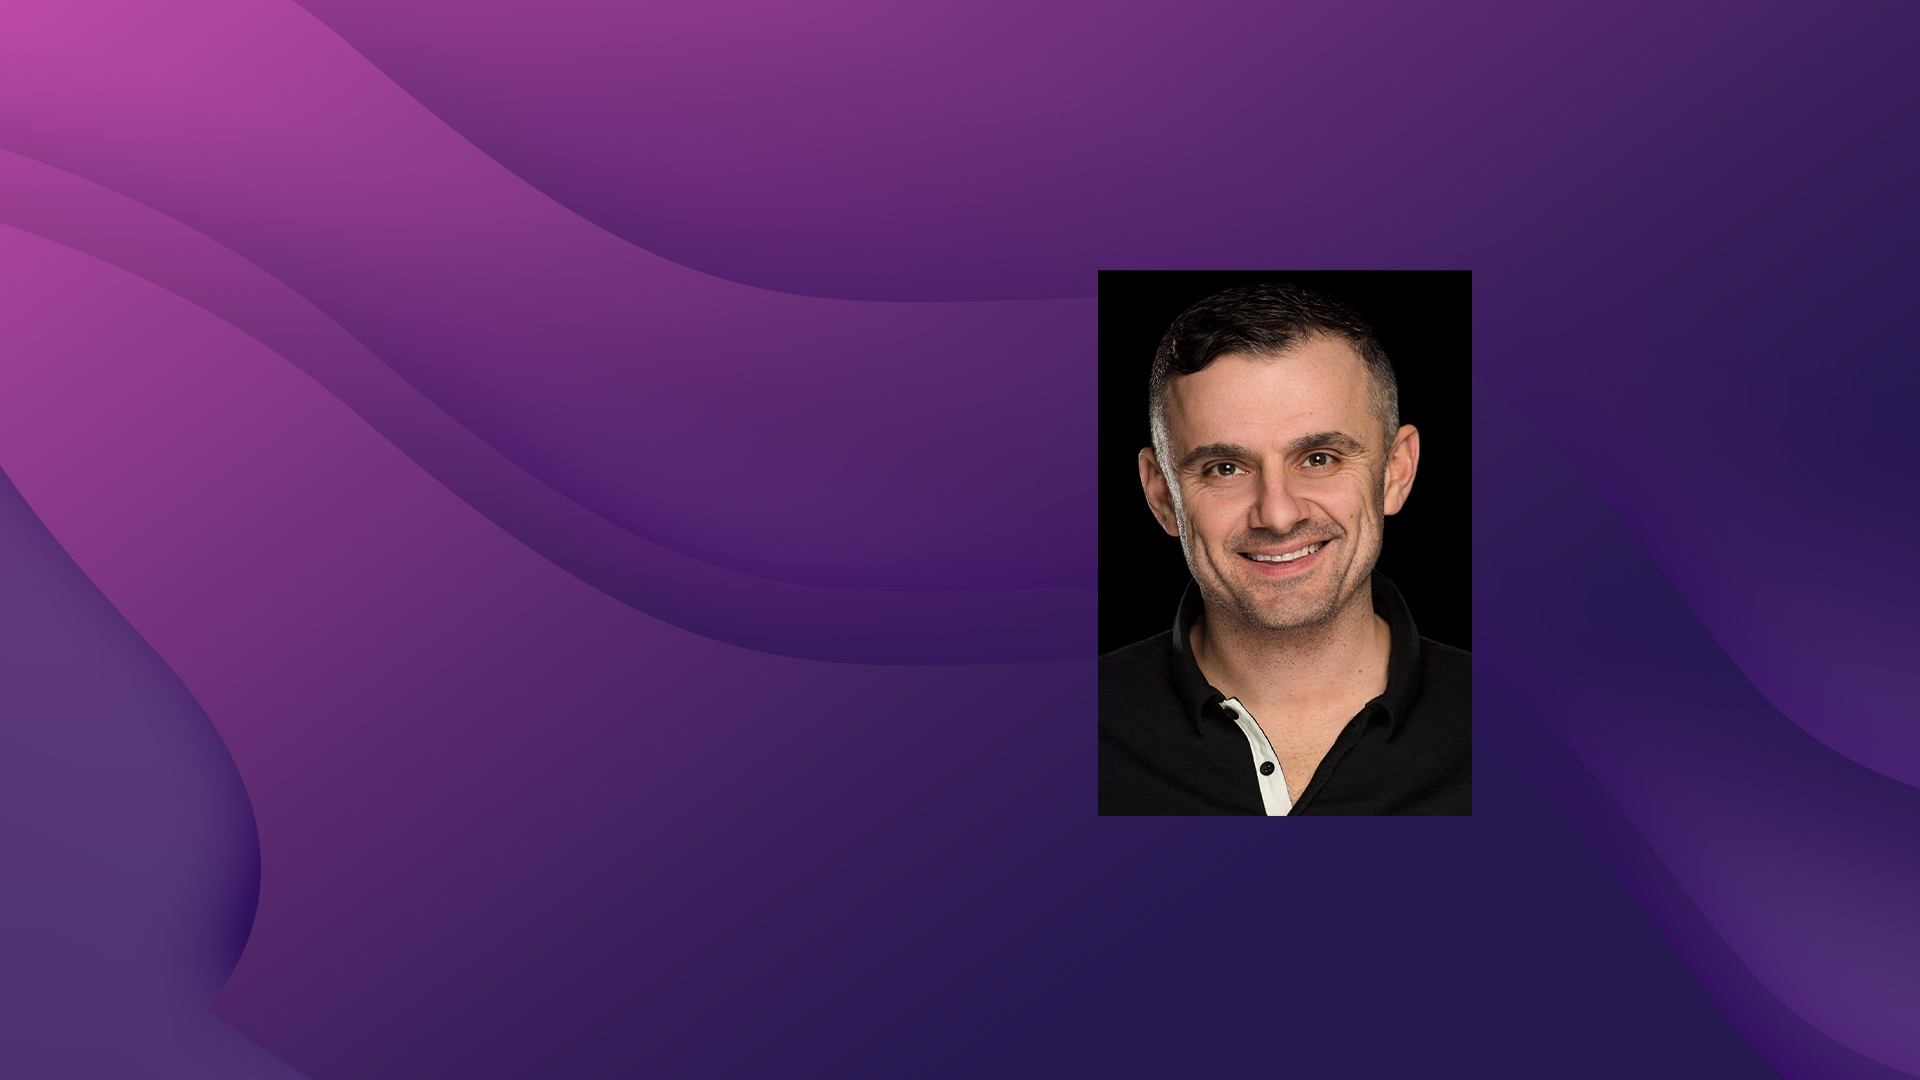 872: Gary Vaynerchuk Reveals What Emerging Technologies Excite Him